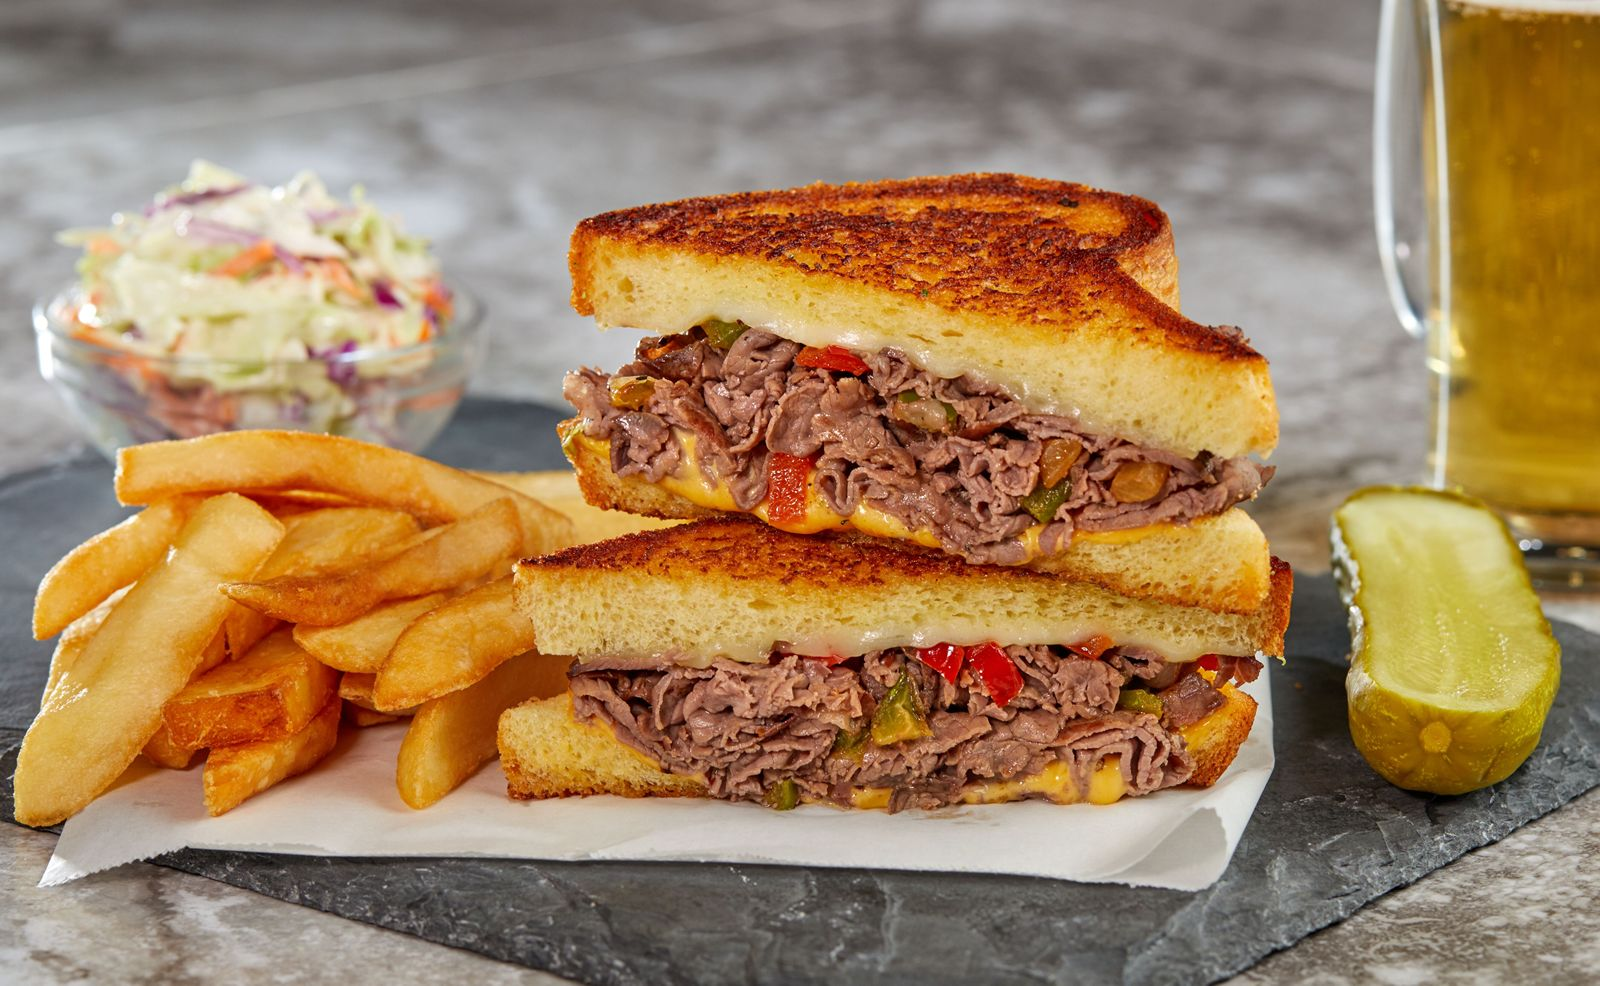 TooJay's Deli Celebrates National Sandwich Month With the Return of the Philly Grilled Cheese for a Limited Time